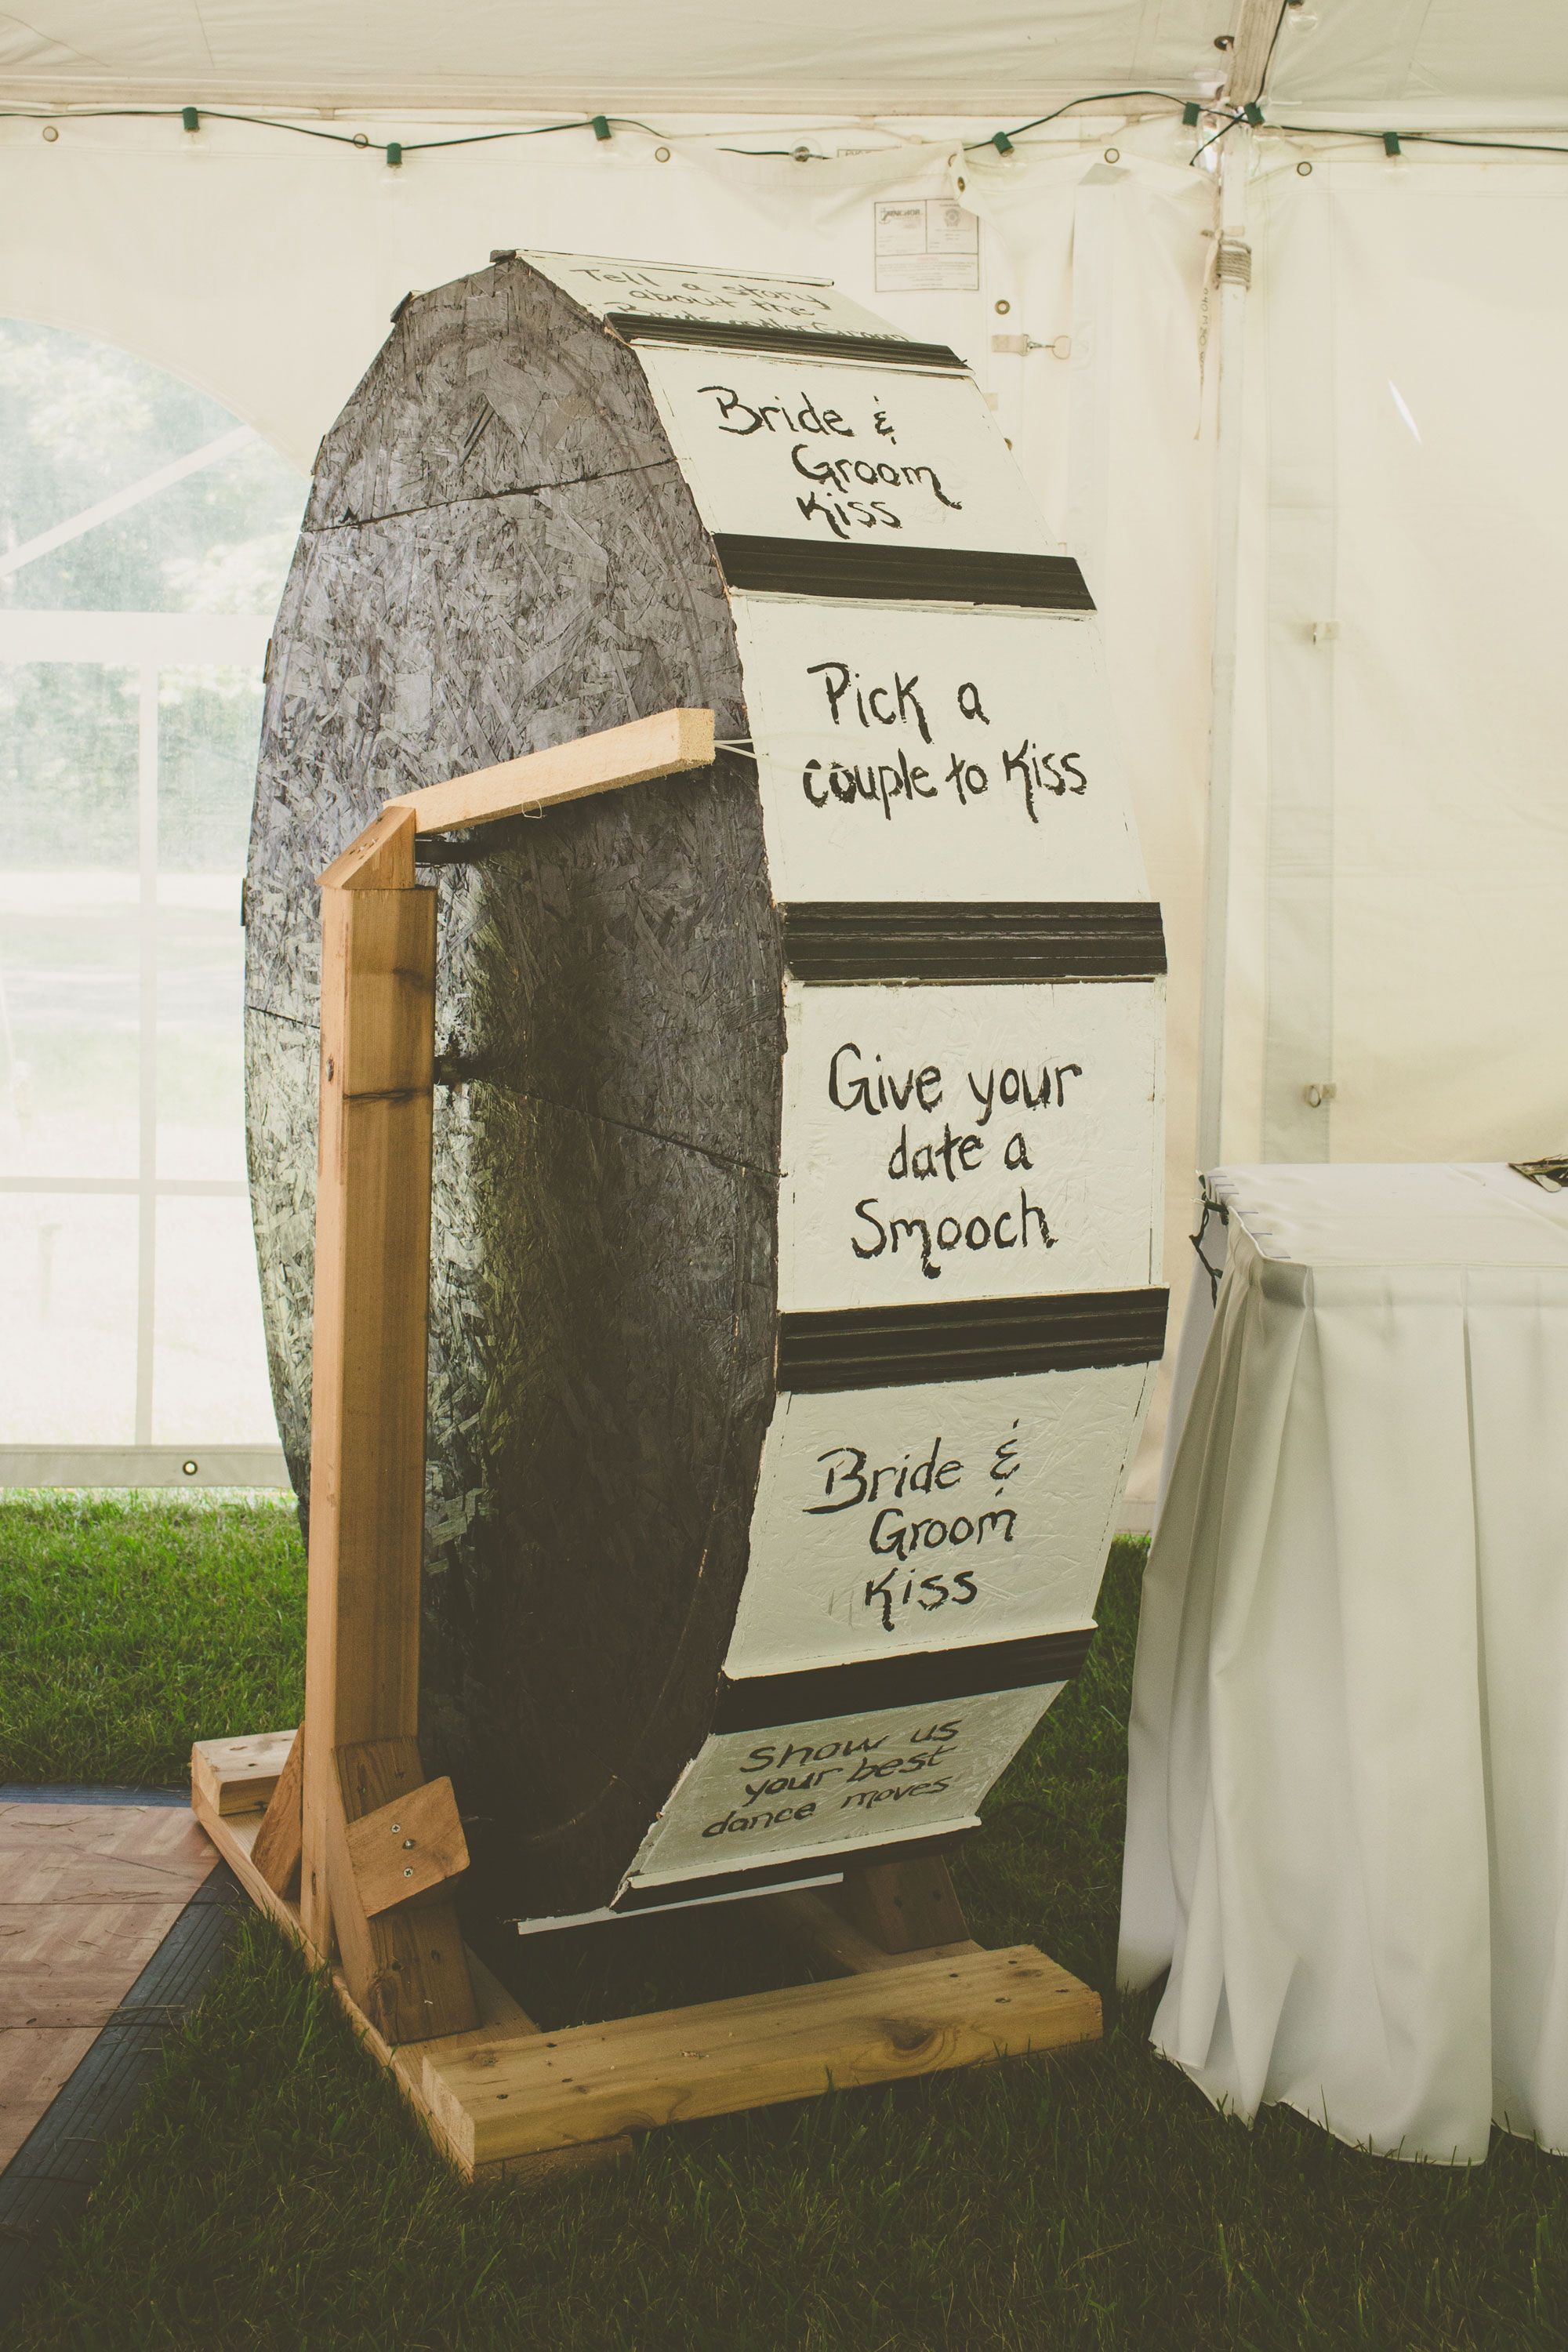 Liven Up Your Wedding Reception With A Wheel Of Fun Wedding